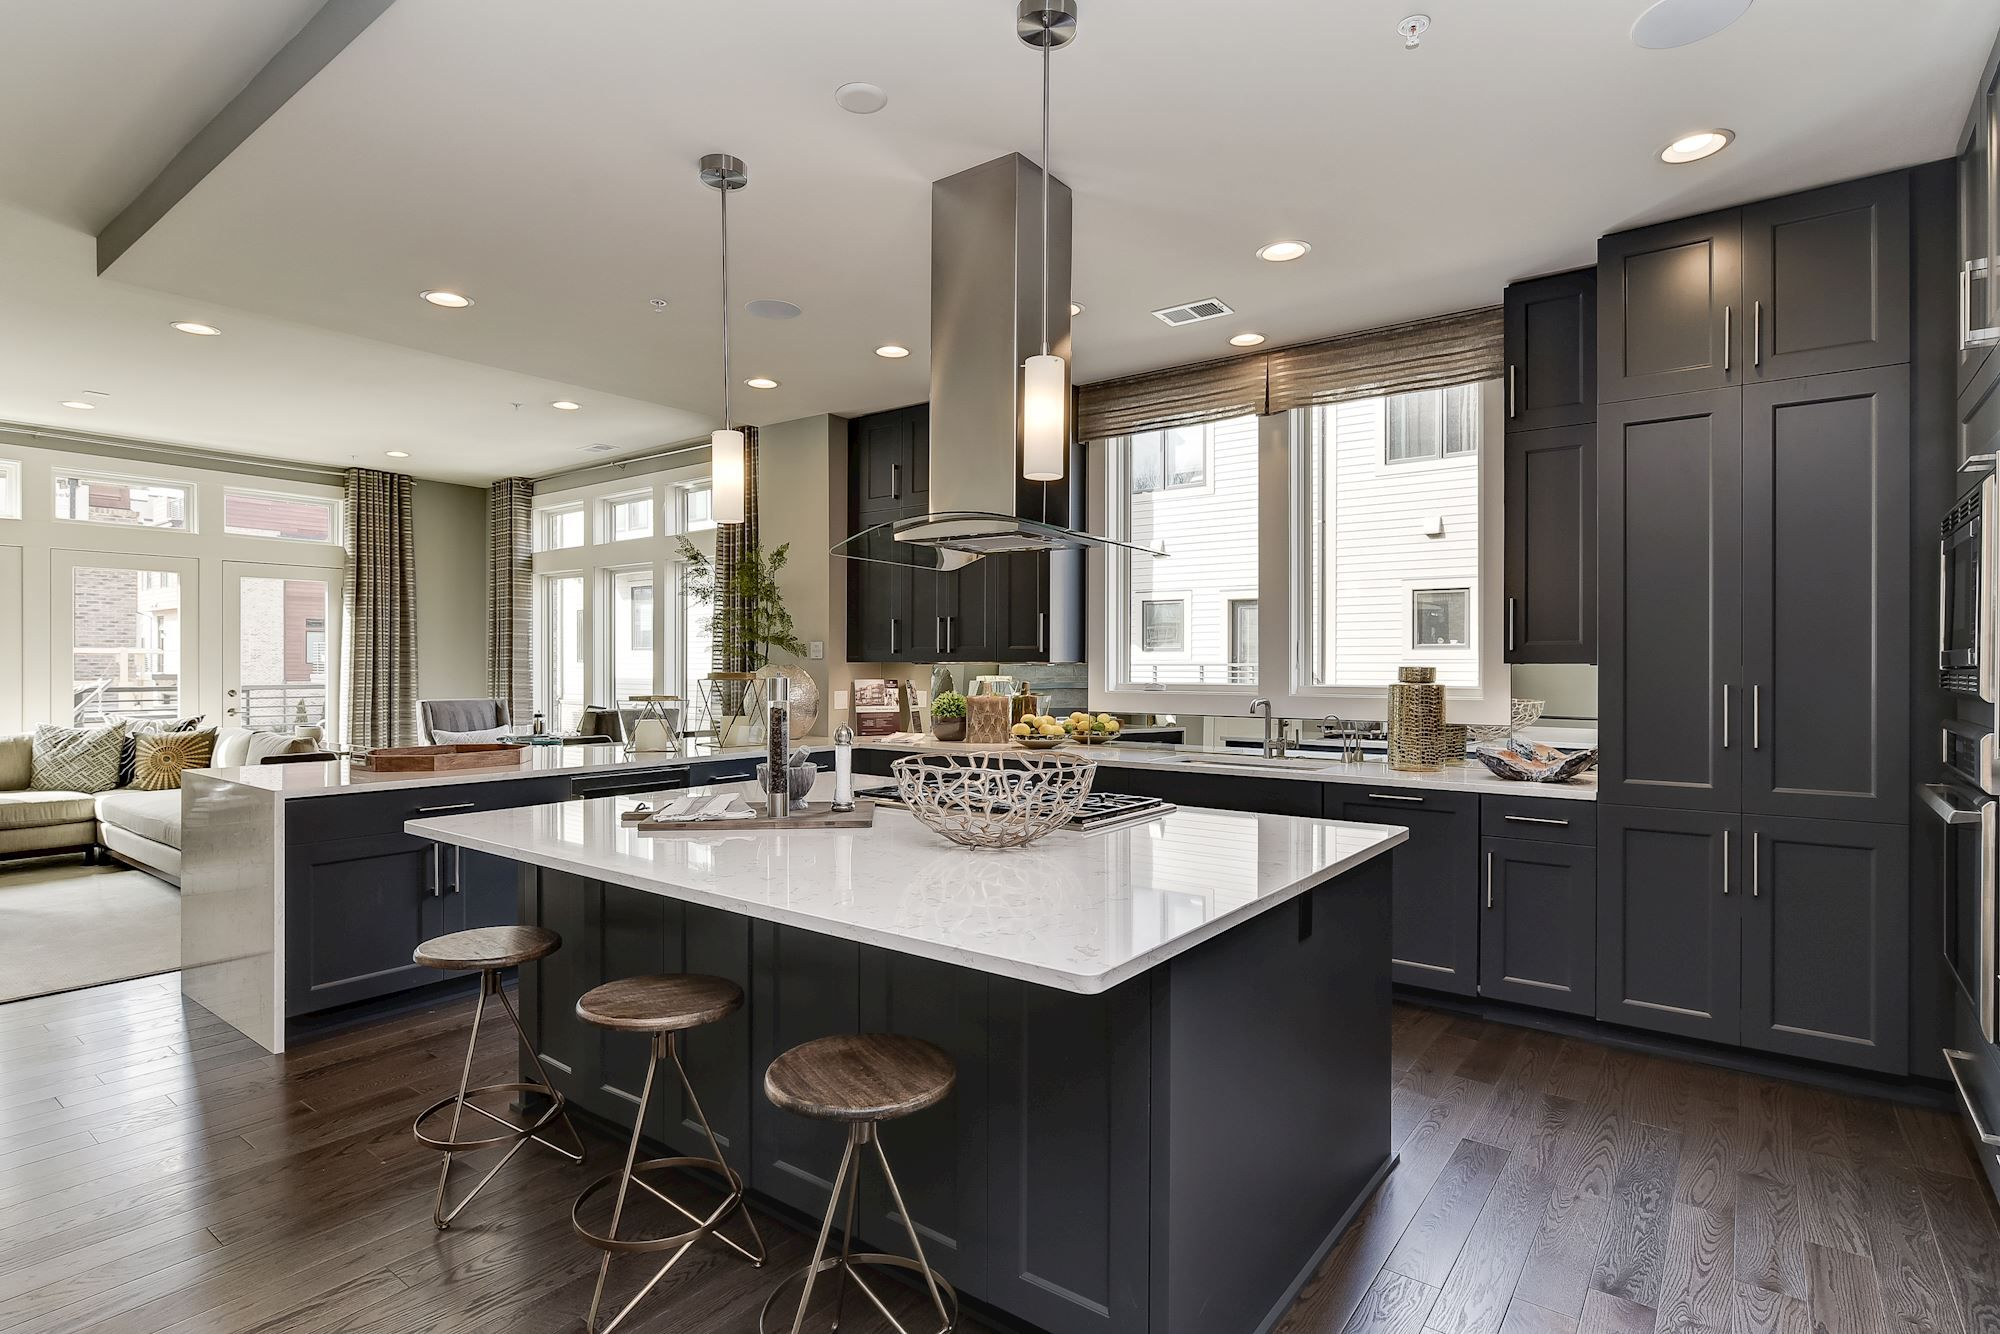 Spacious Contemporary Kitchen With Large Central Island Featured